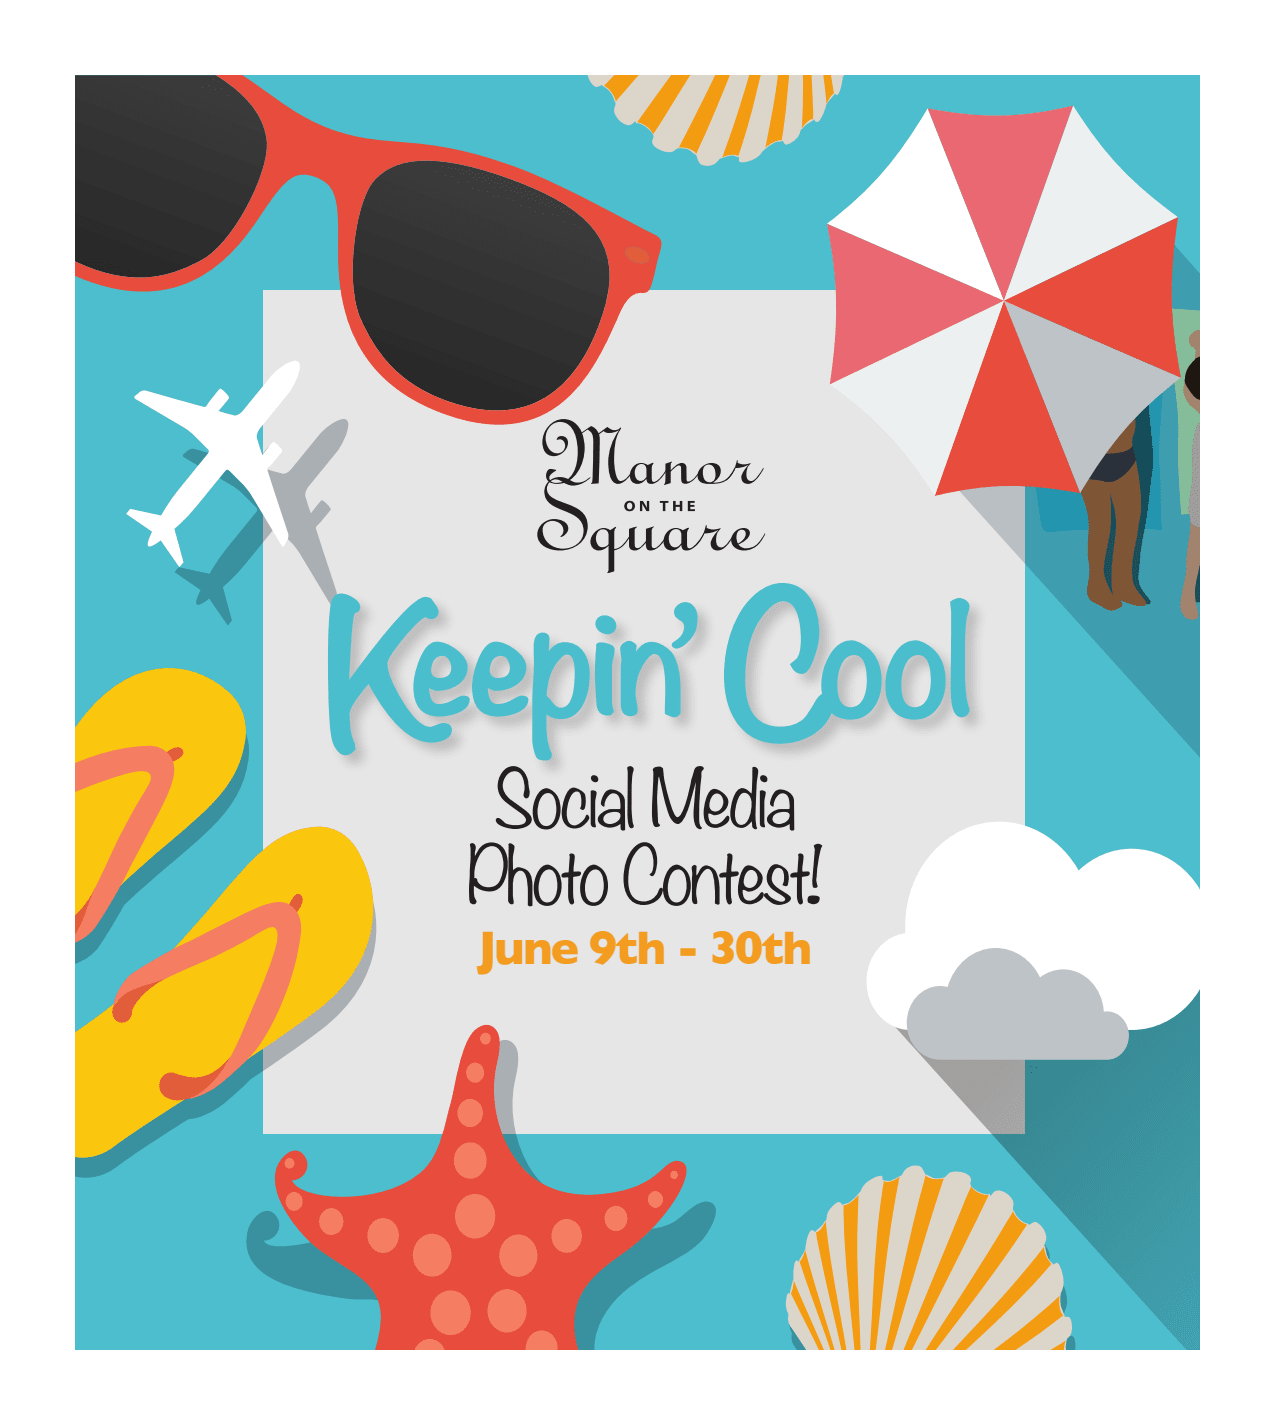 Keep Cool Photo Contest - activities at Benton House of Raymore in Raymore, MO